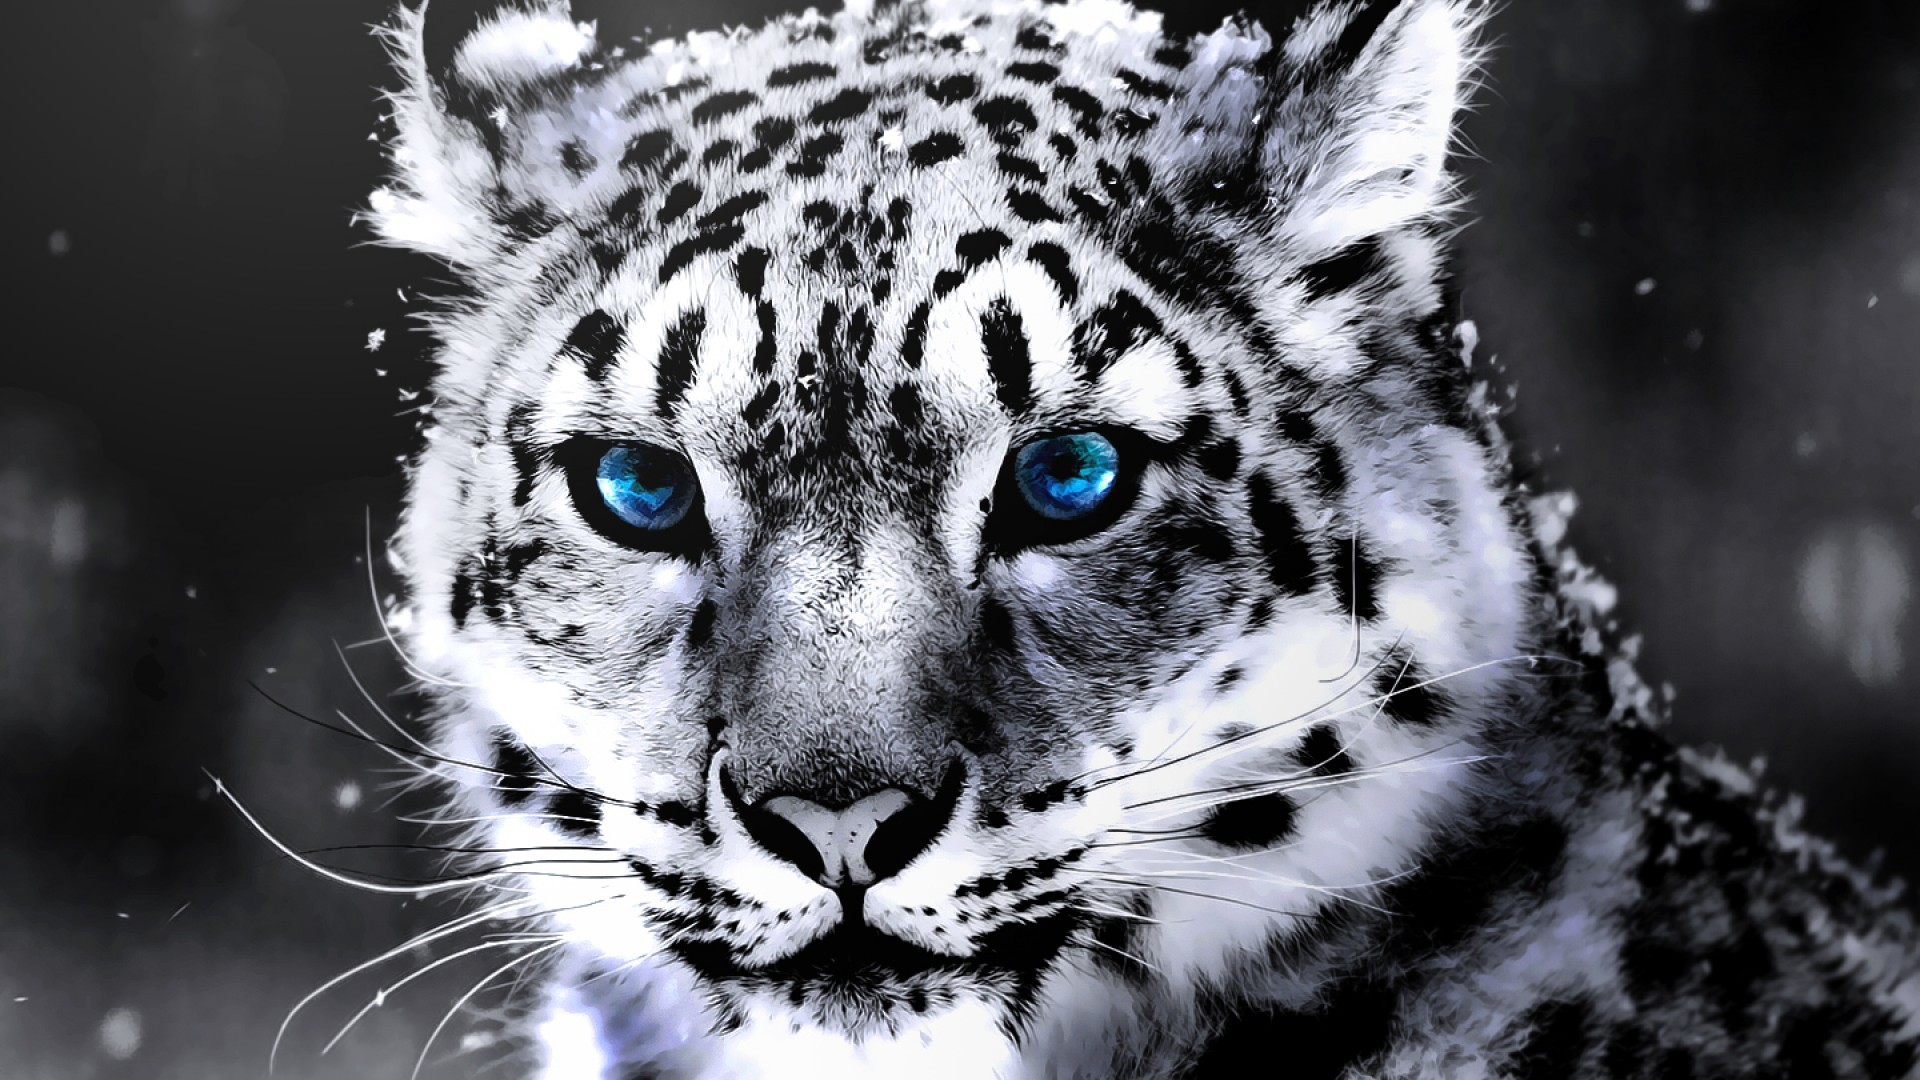 white tiger hd wallpapers 1080p,mammal,vertebrate,snow leopard,whiskers,wildlife